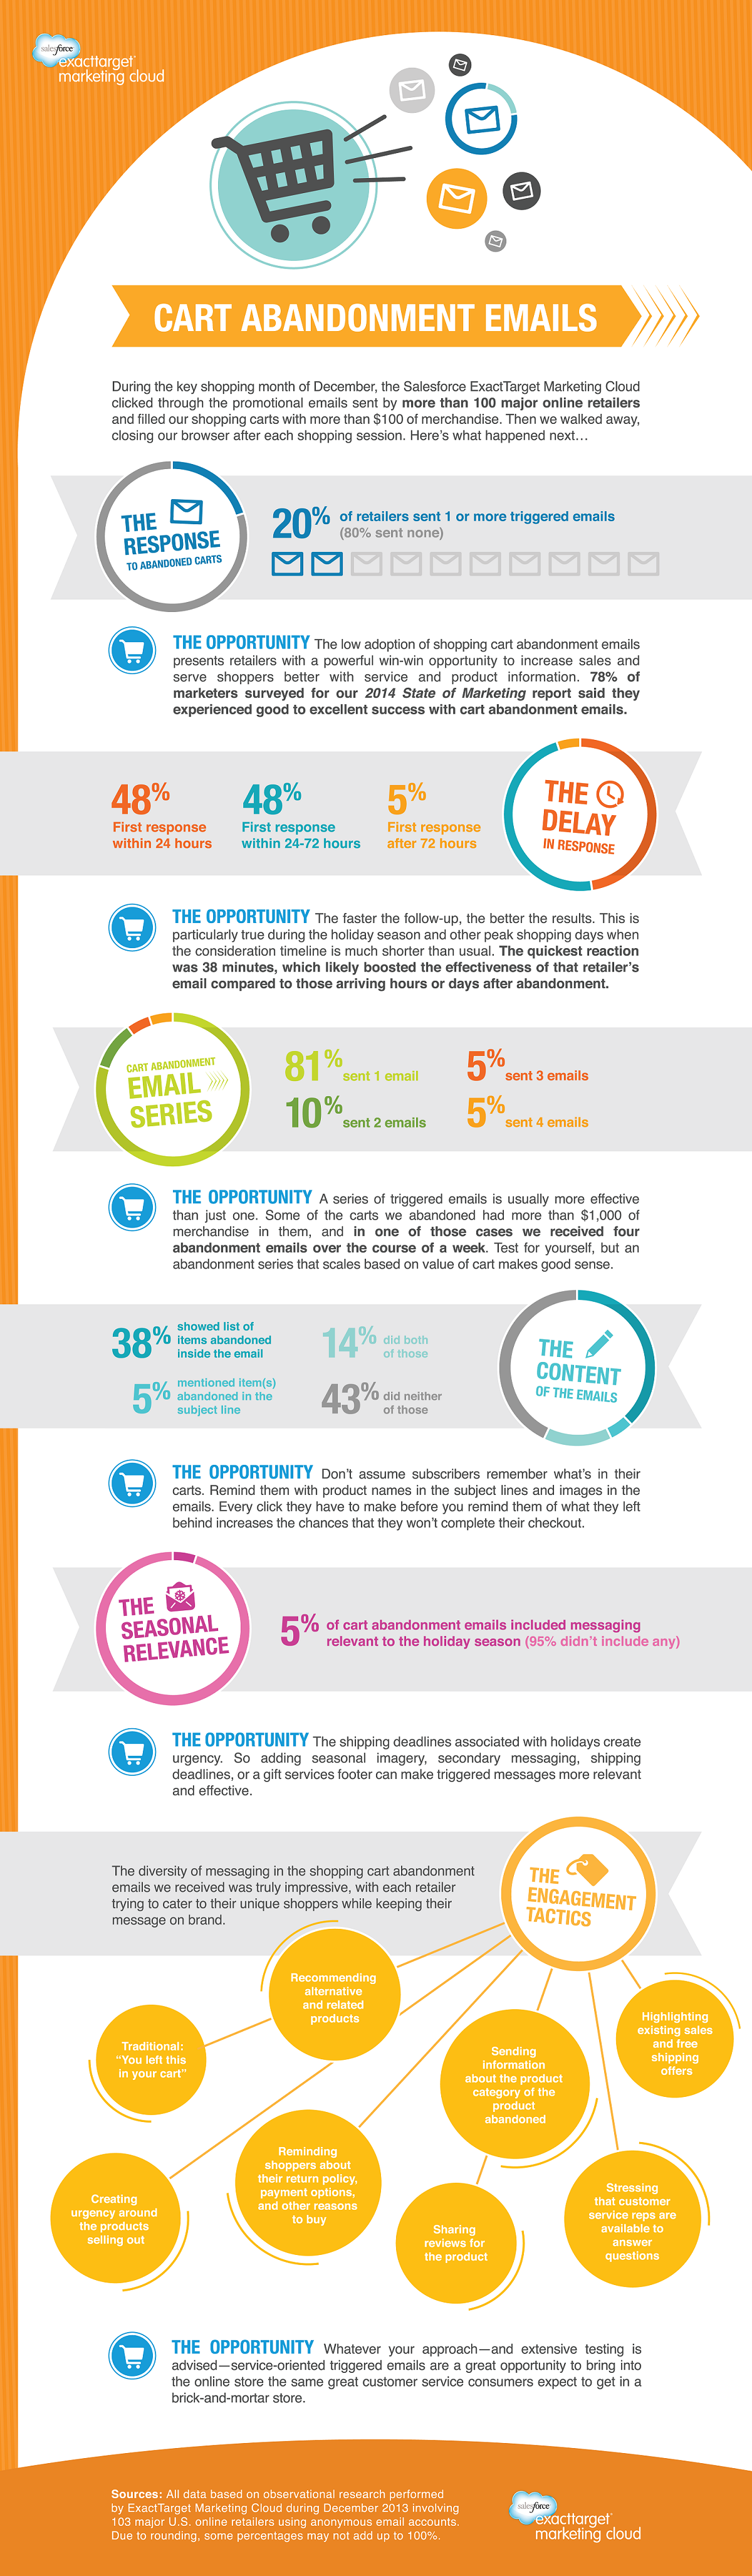 Cart Abandonment Emails: Trends and Opportunities #Infographic